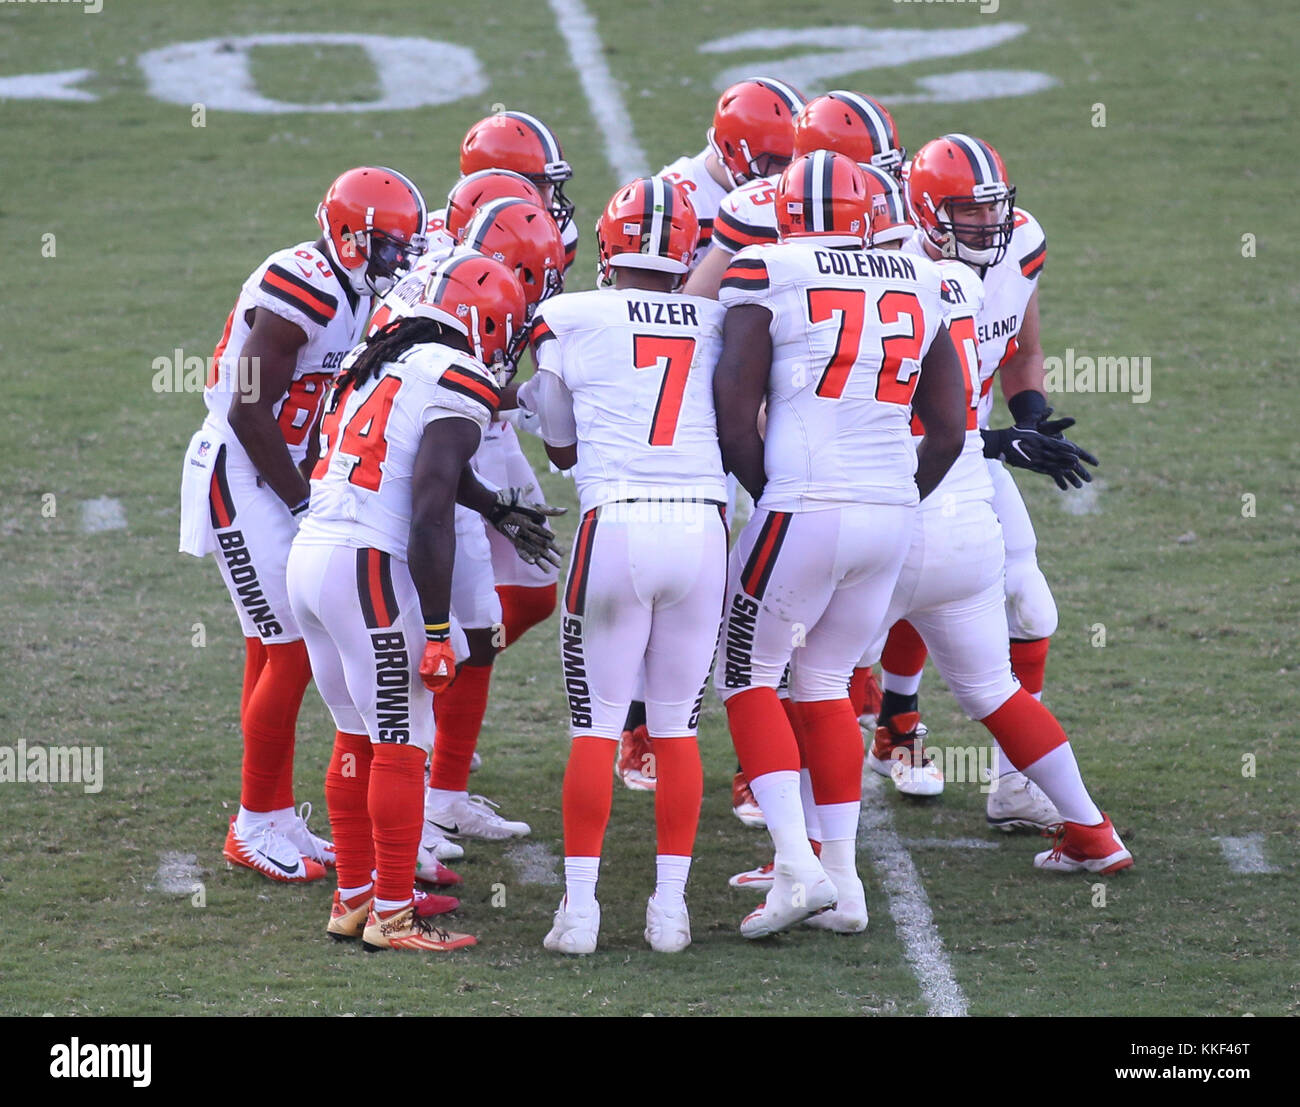 Carson, CA. 03rd Dec, 2017. Cleveland Browns offense during the NFL Cleveland Browns vs Los Angeles Chargers at Stock Photo